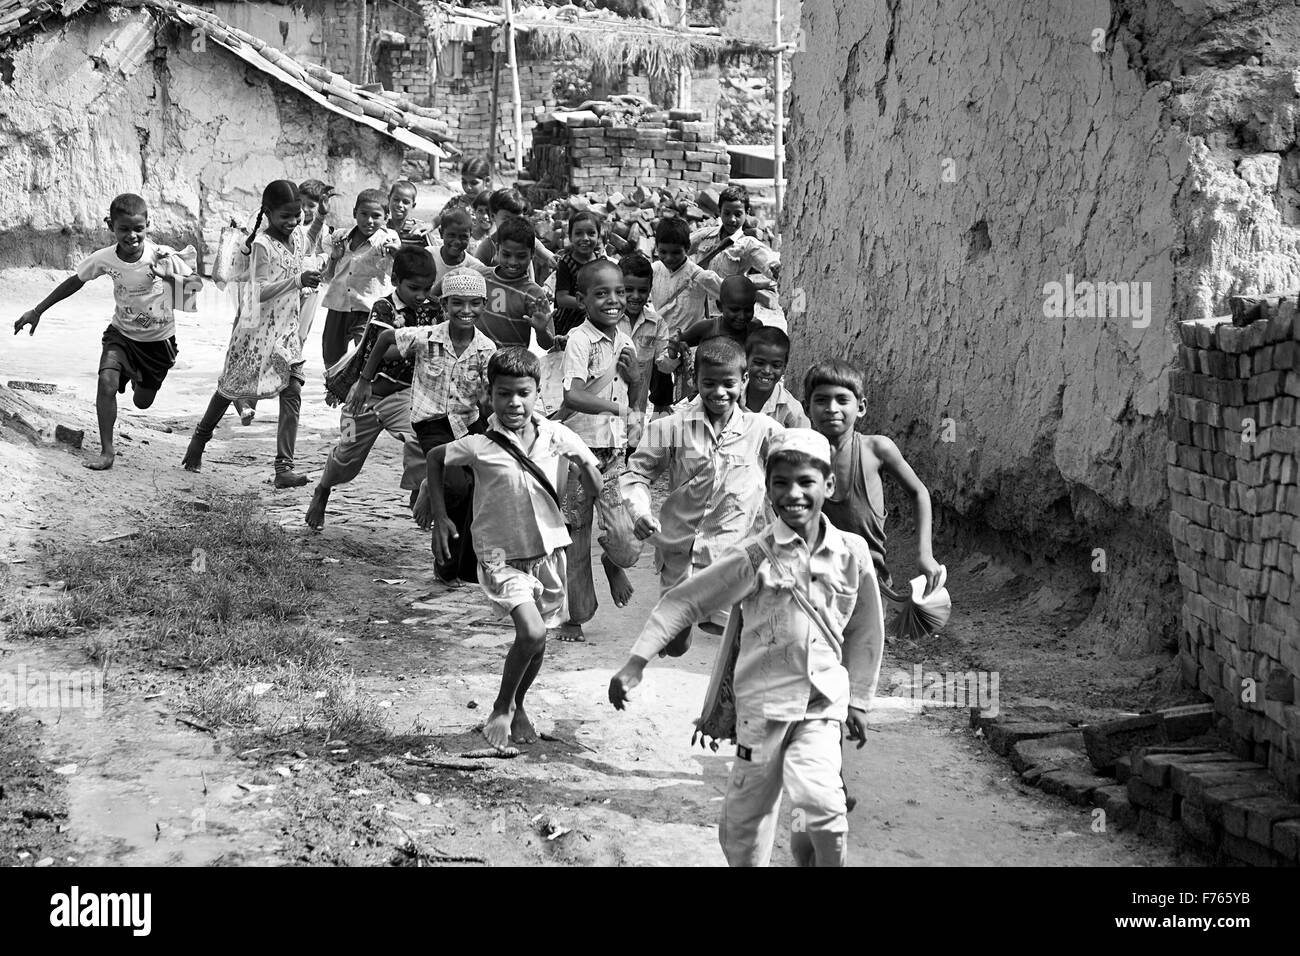 School children running, varanasi, uttar pradesh, india, asia - Stock Image